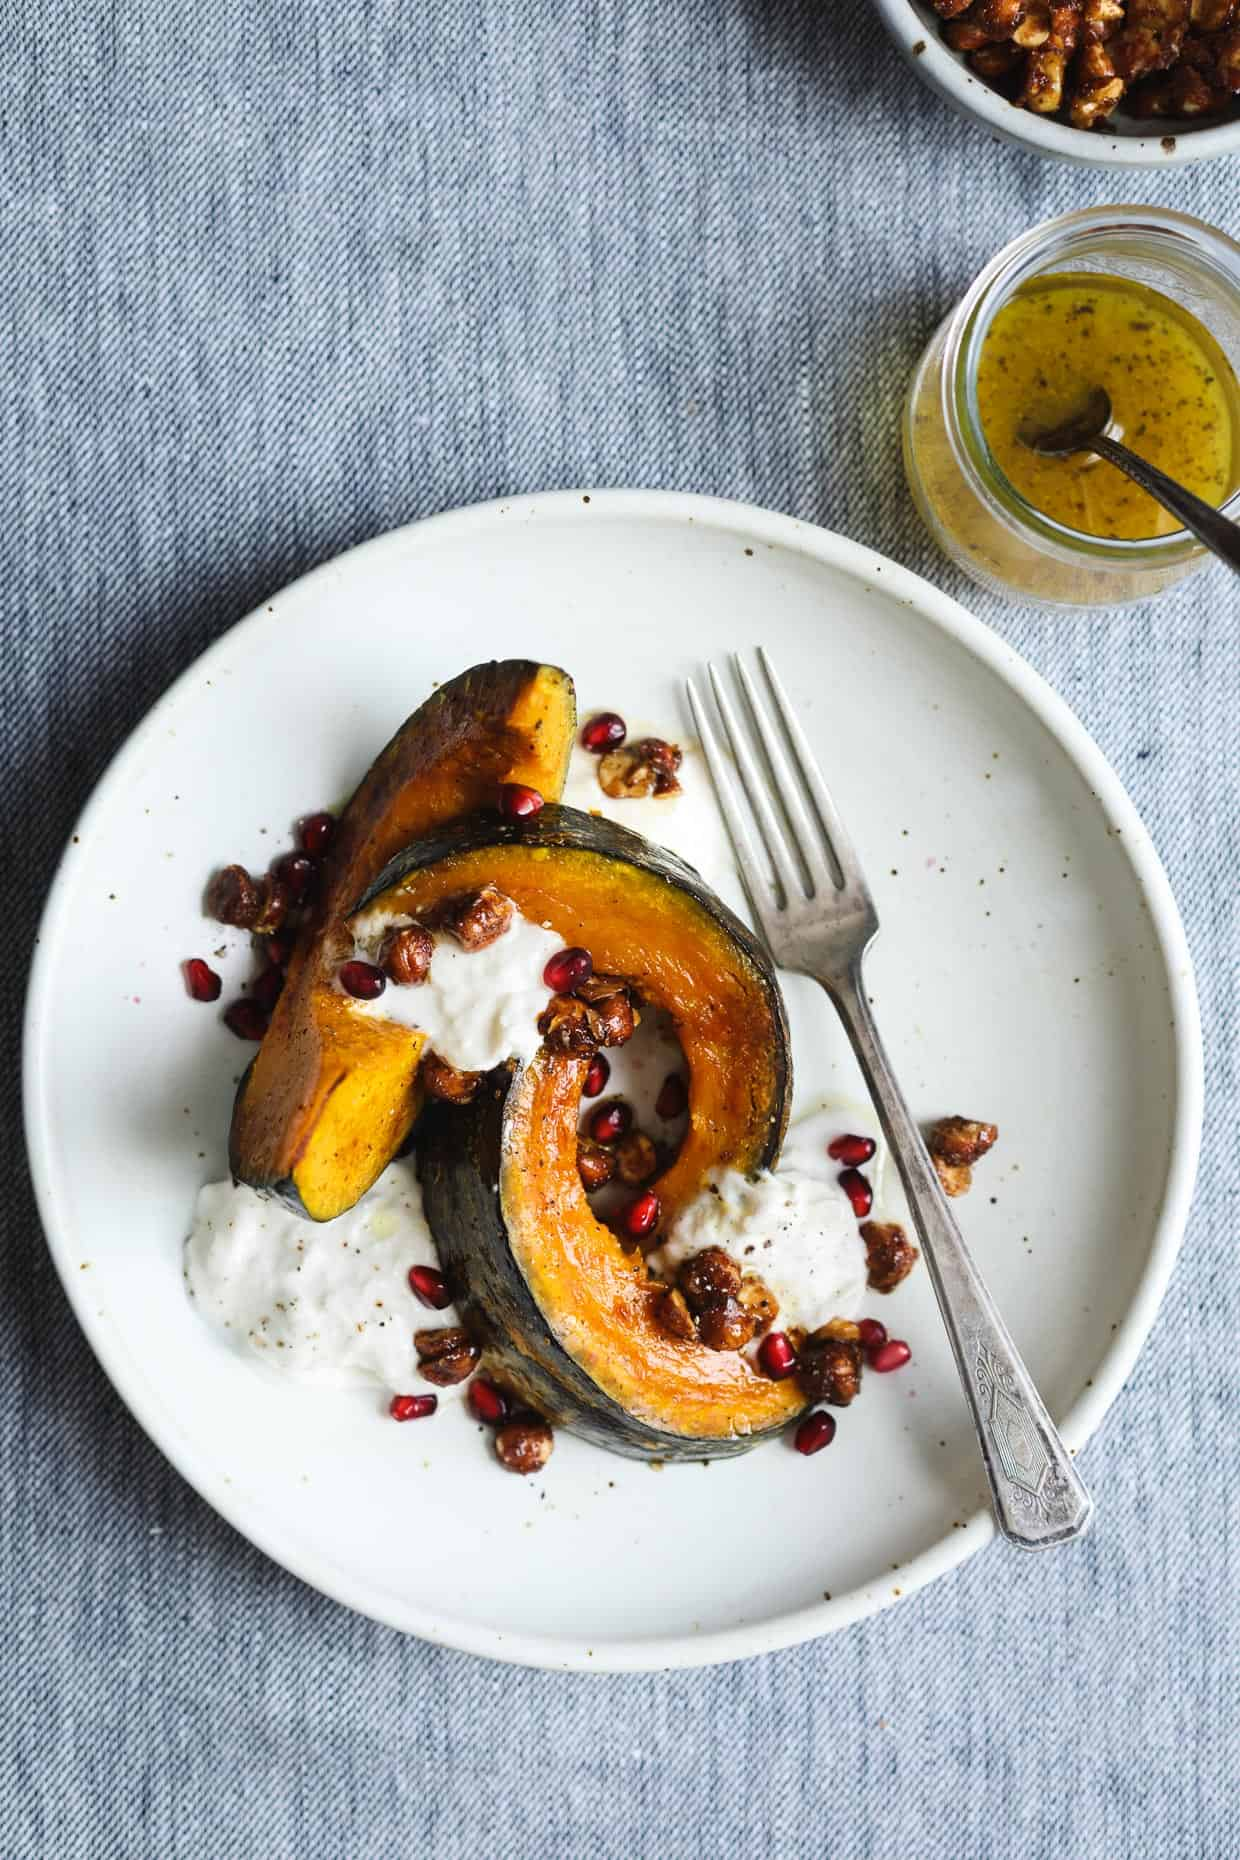 Roasted Squash with Burrata, Spicy Hazelnuts, and Maple Vinaigrette